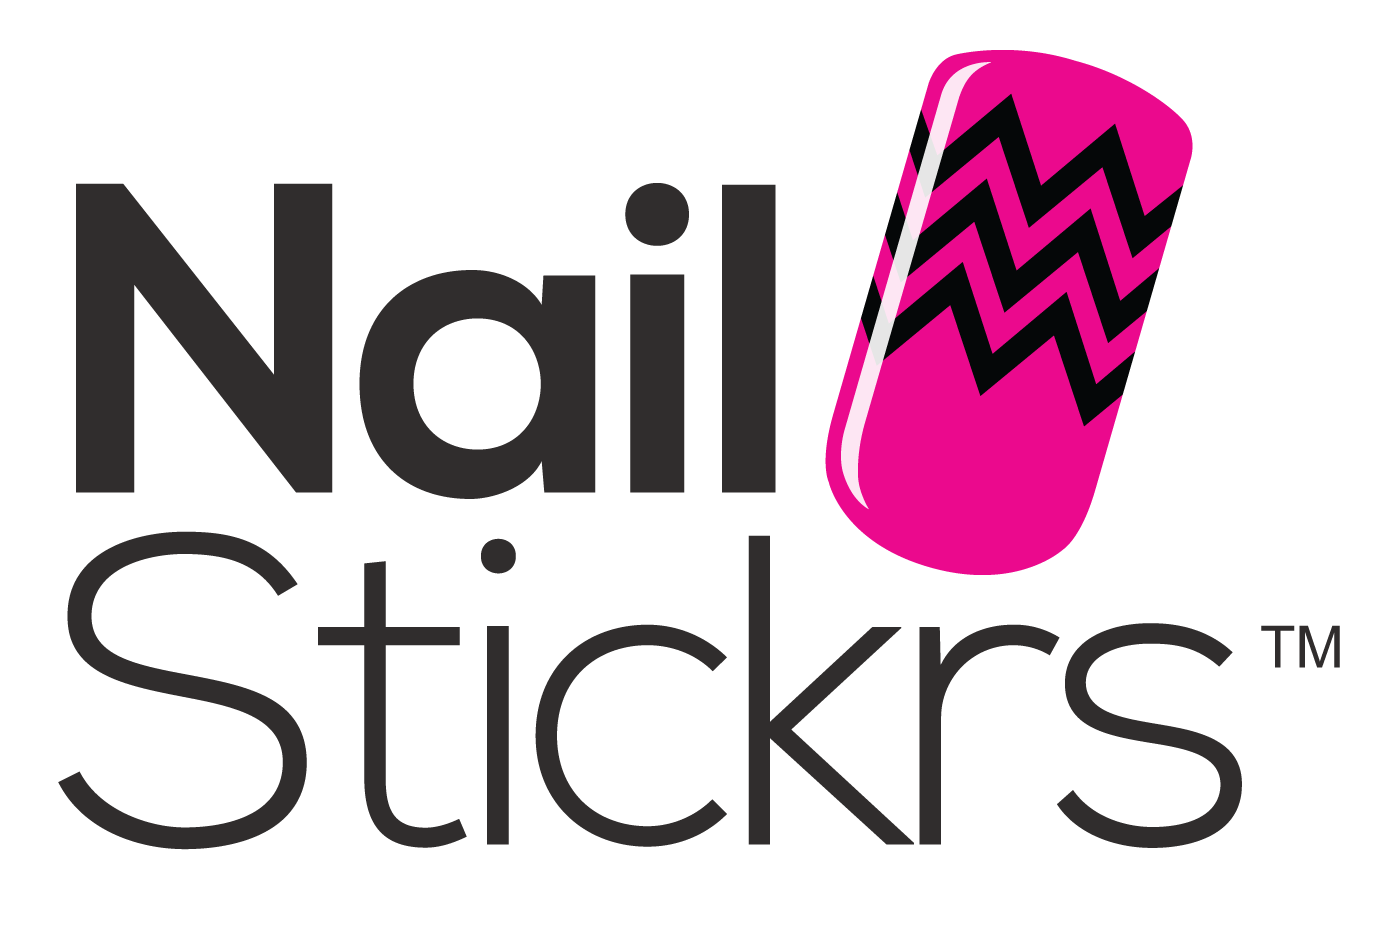 Nail Stickrs logo by Boasting Biz.